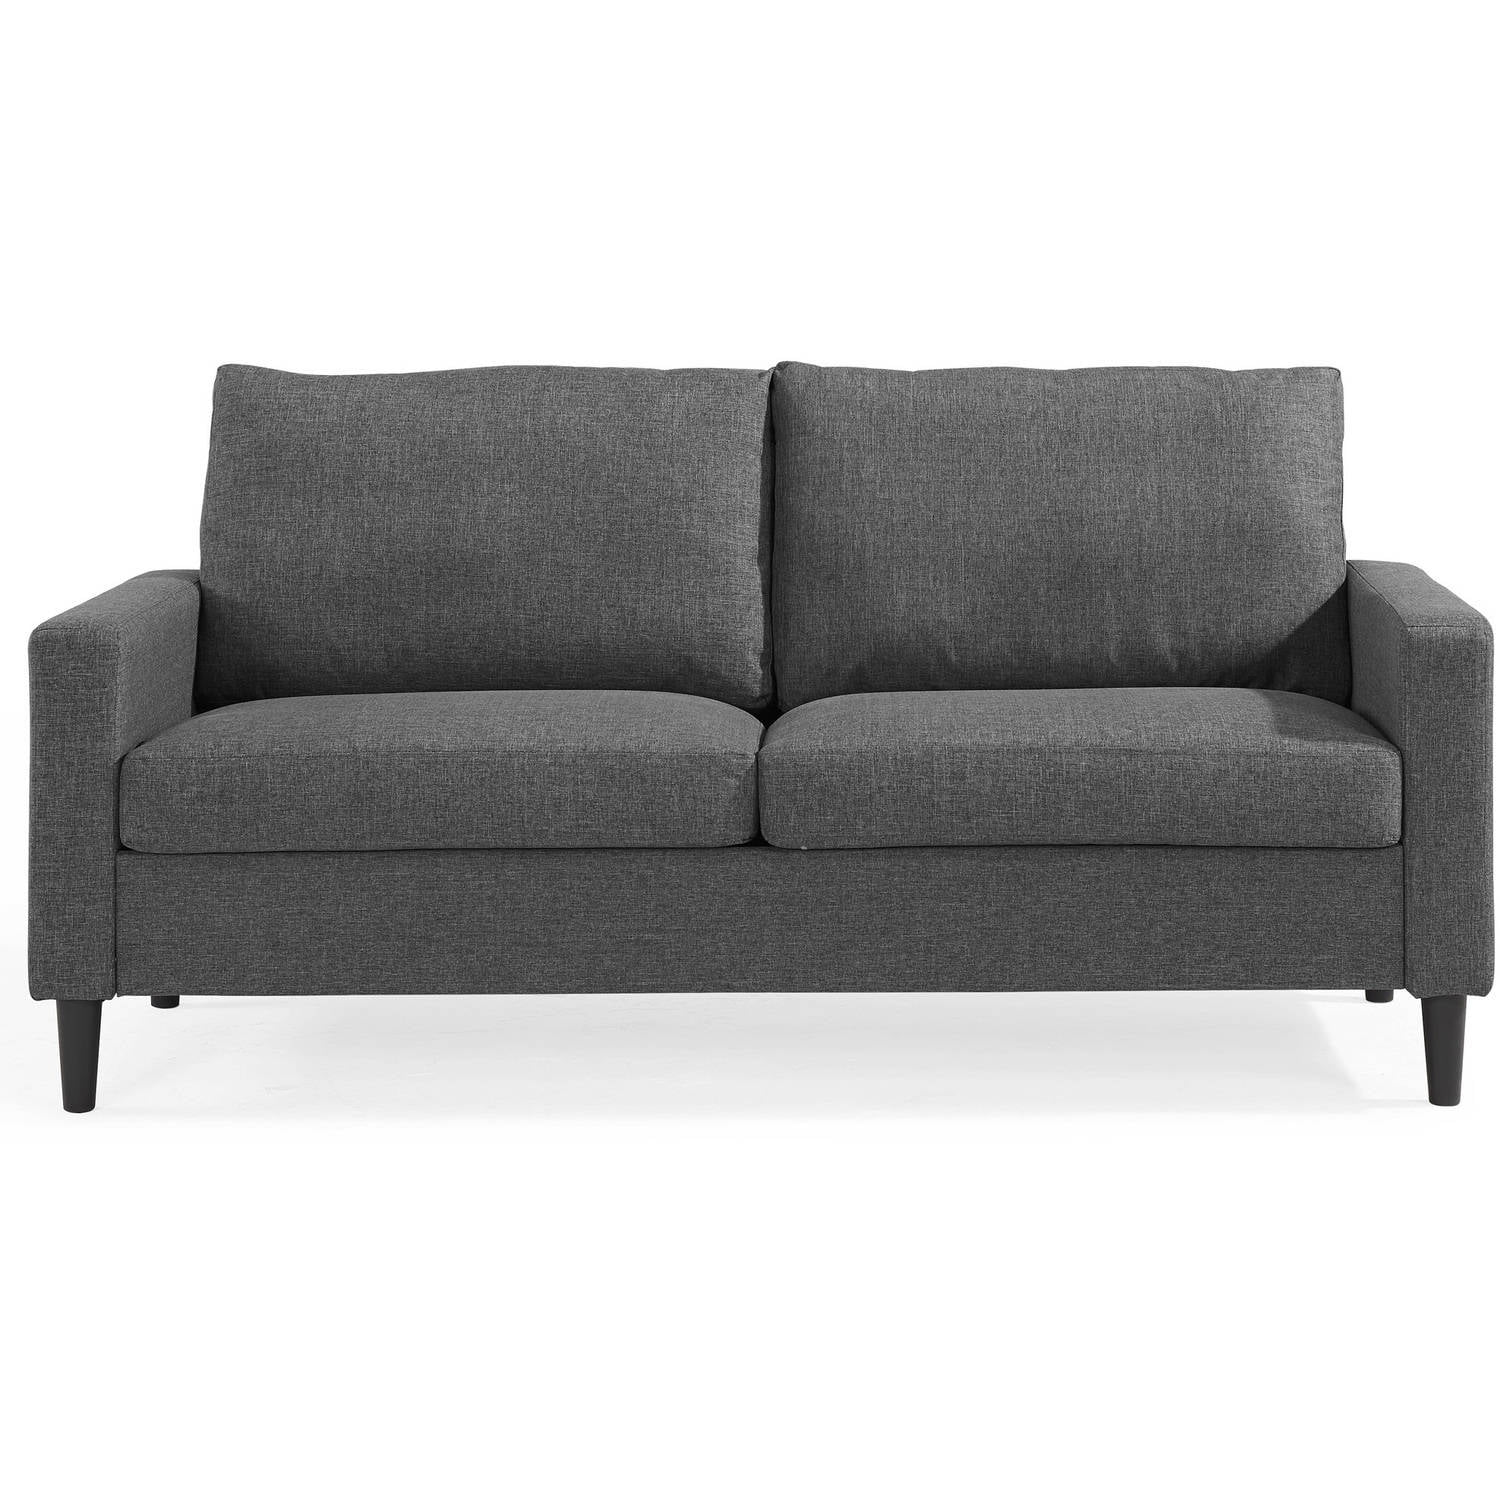 Big Sofa Fawn Furniture Walmart